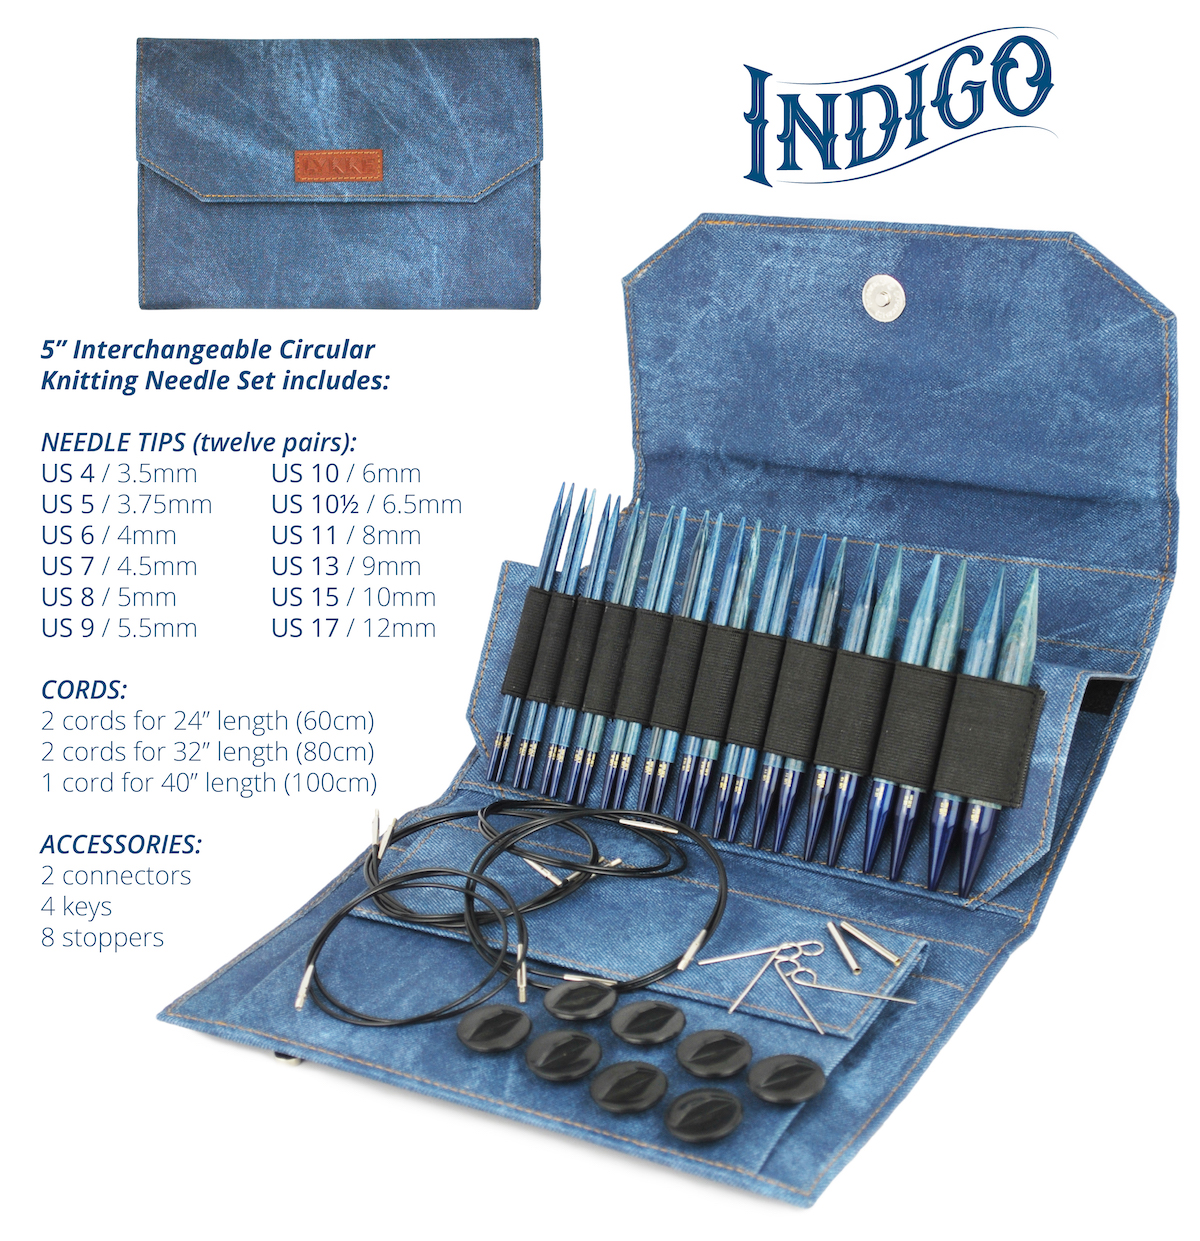 Indigo Interchangeable Circular Kitting Needle Set - 5 Inch Needles